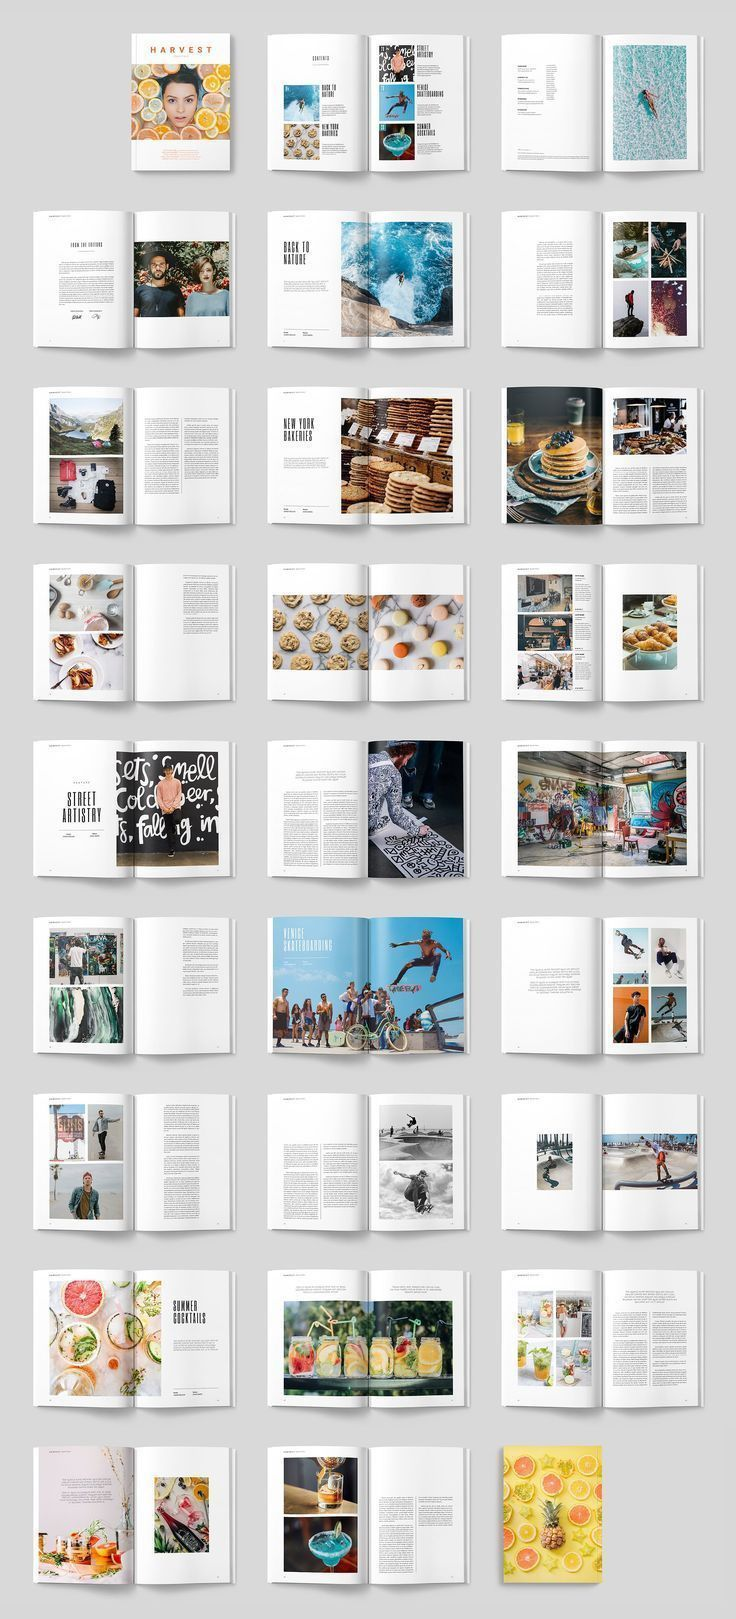 002 Astounding Free Magazine Article Layout Template For Word Example Full